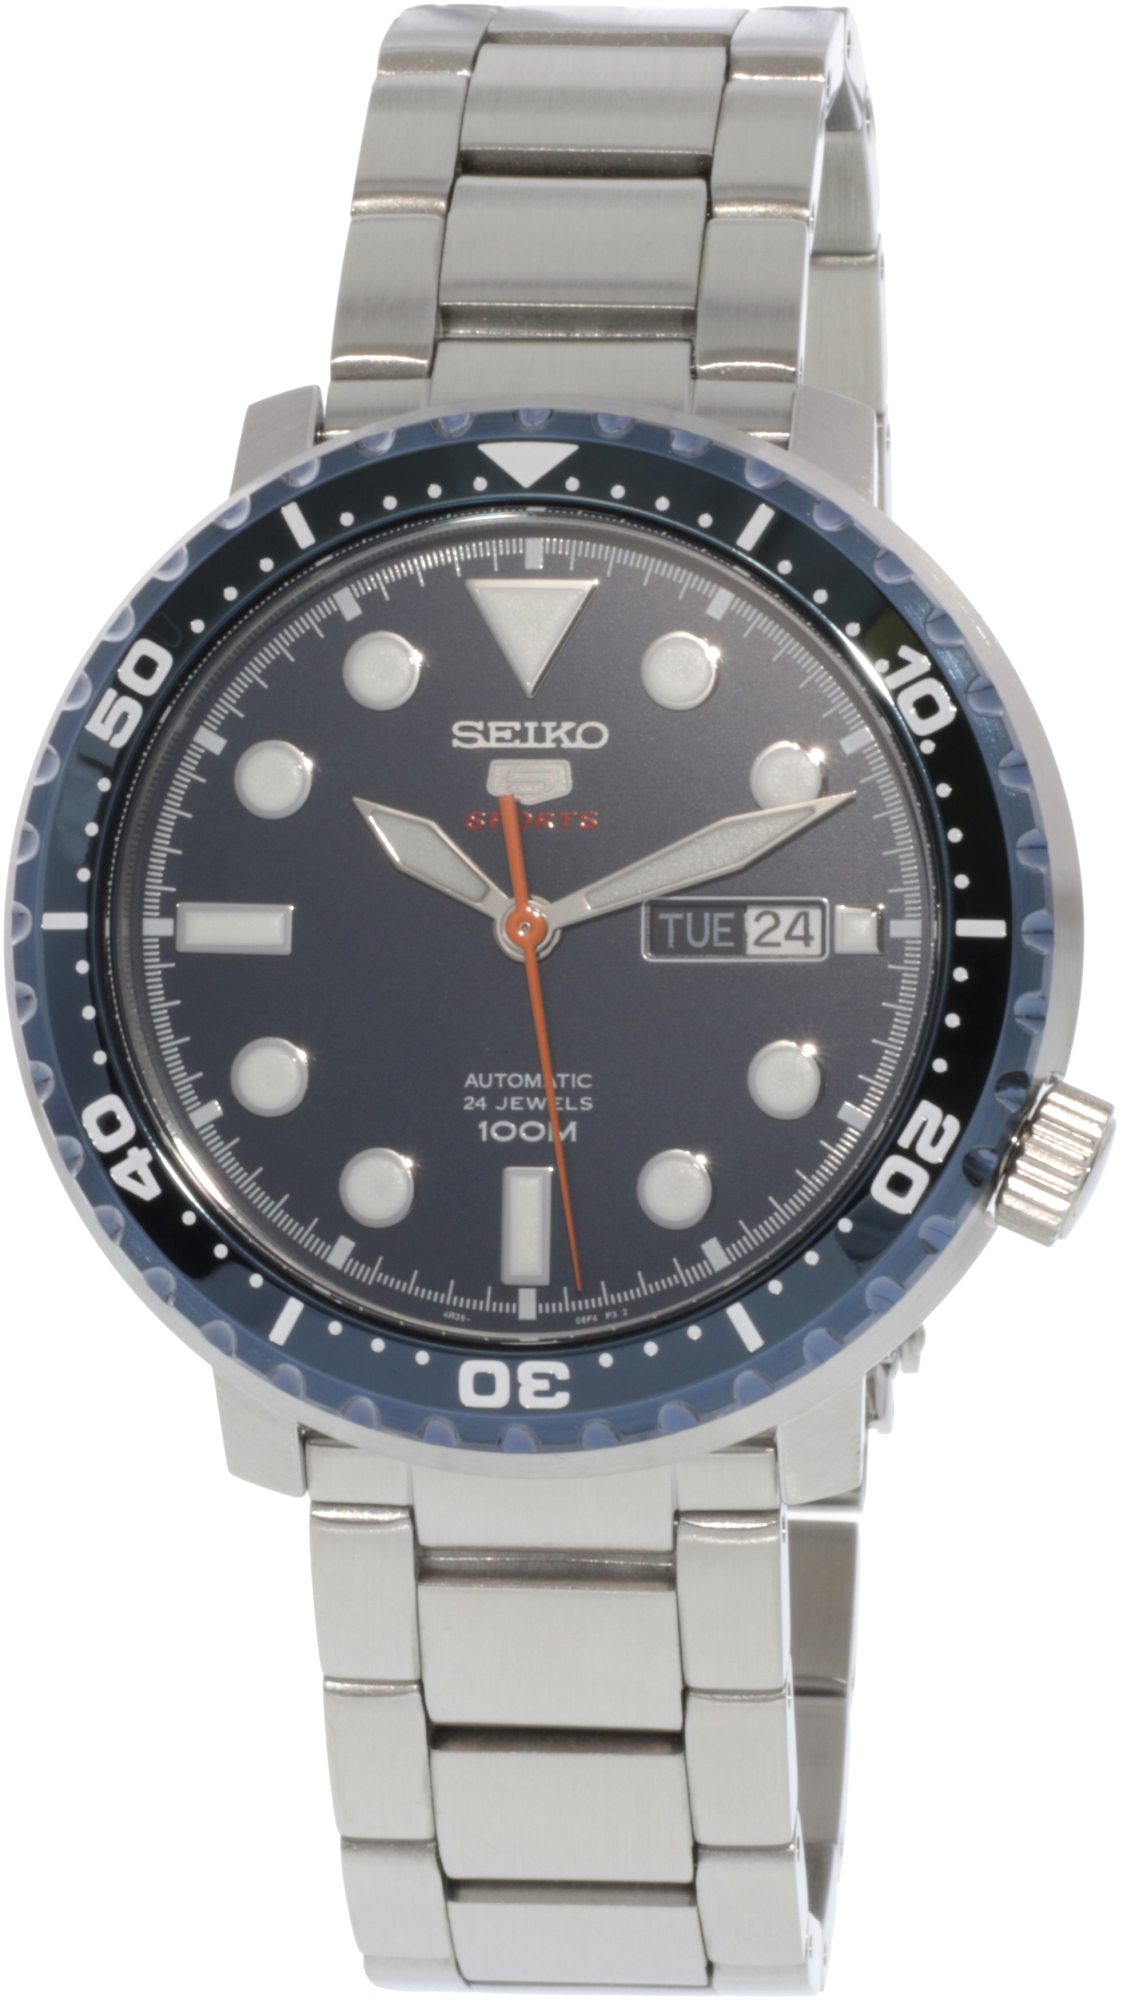 Seiko_Men's_SRPC63K_Silver_Stainless-Steel_Automatic_Sport_Watch